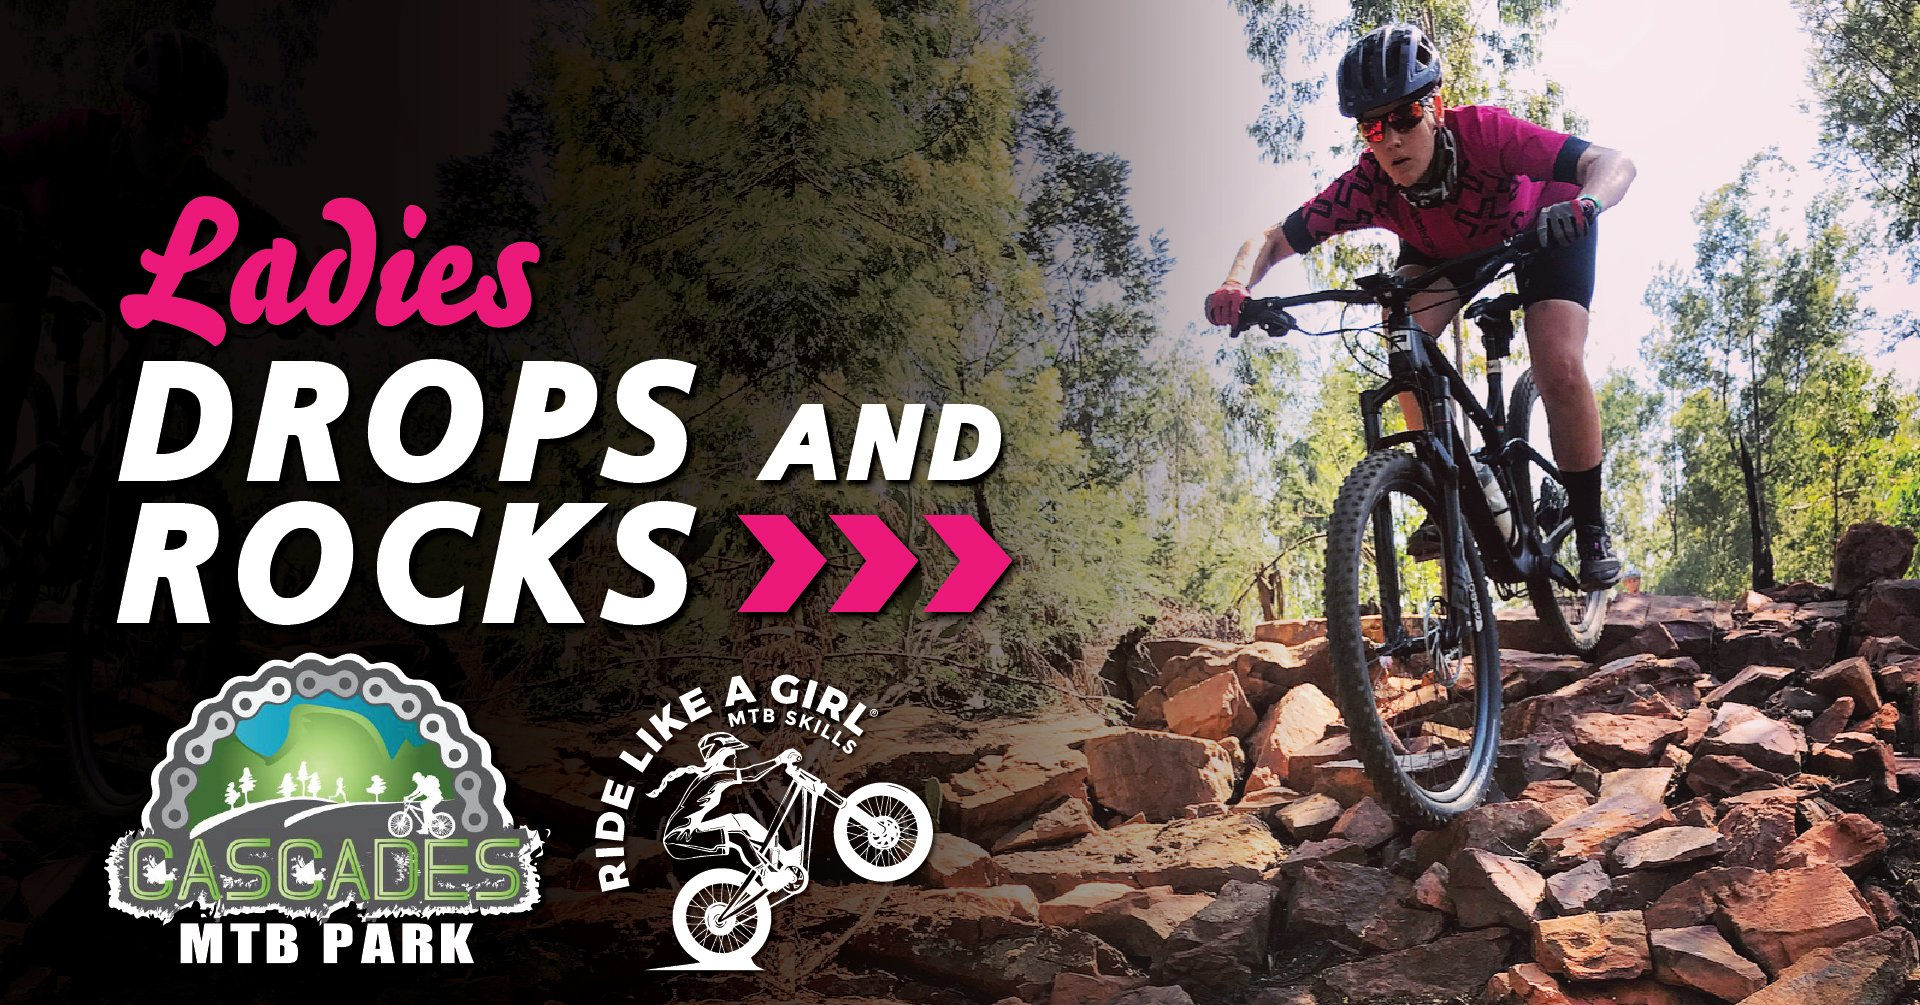 Cascades* - Ladies Drops & Rocks MTB Skills Clinic